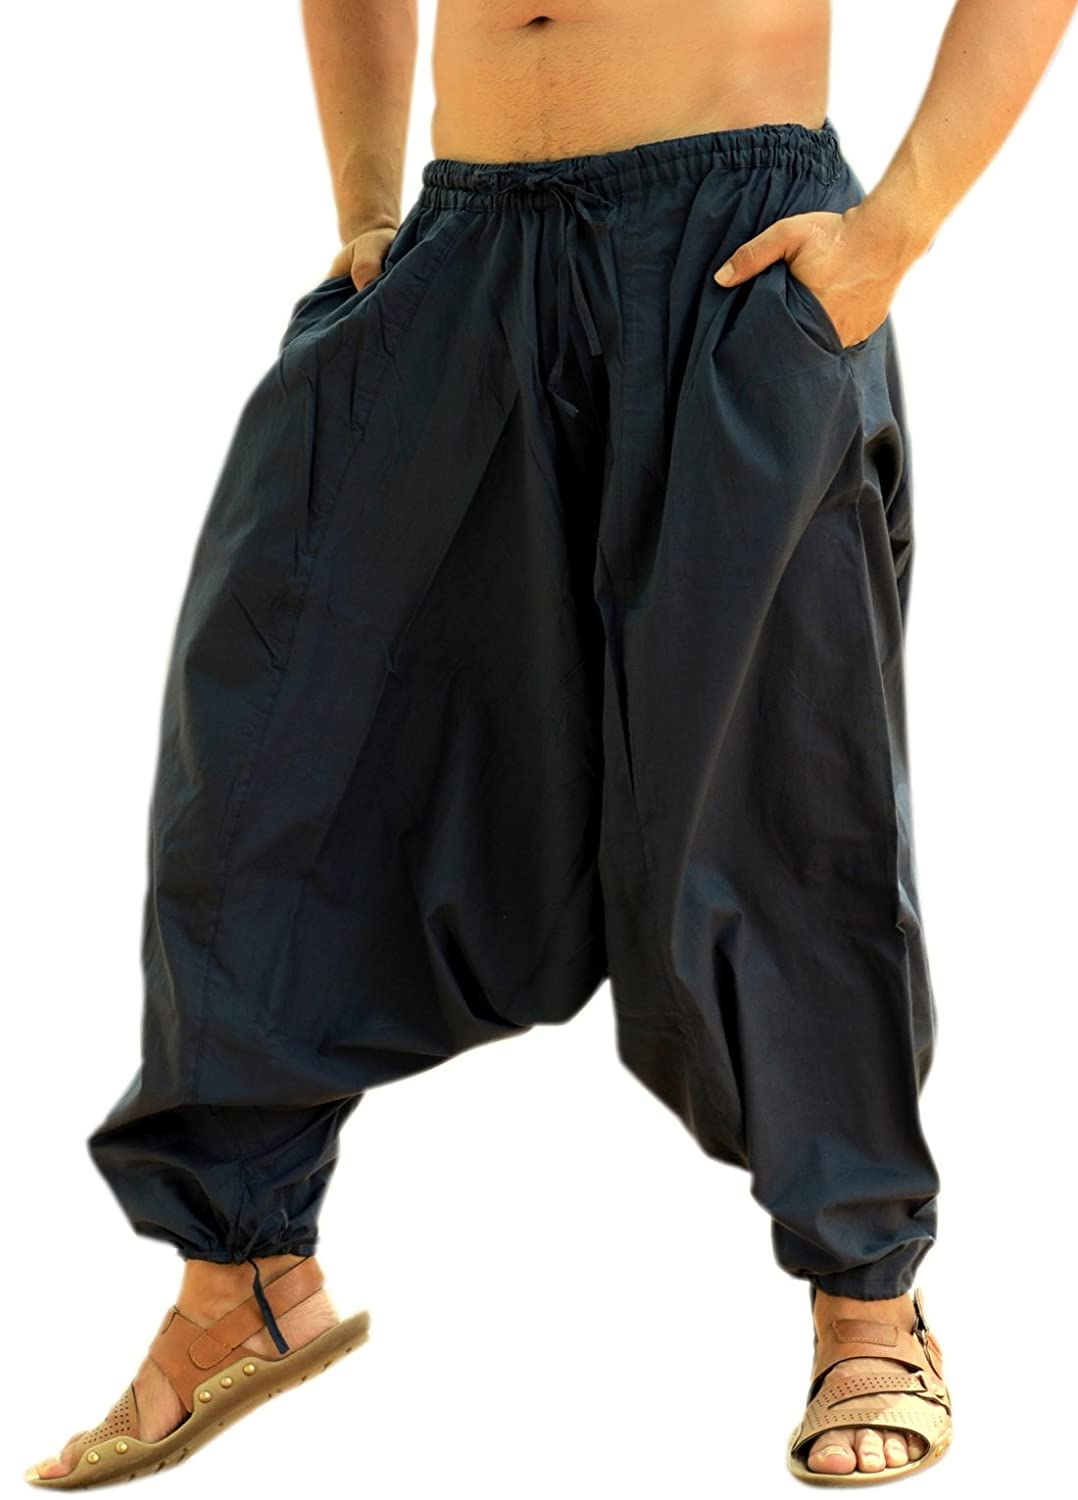 Sarjana Handicrafts Men's Cotton Harem Yoga Baggy Genie Boho Pants Navy Blue)